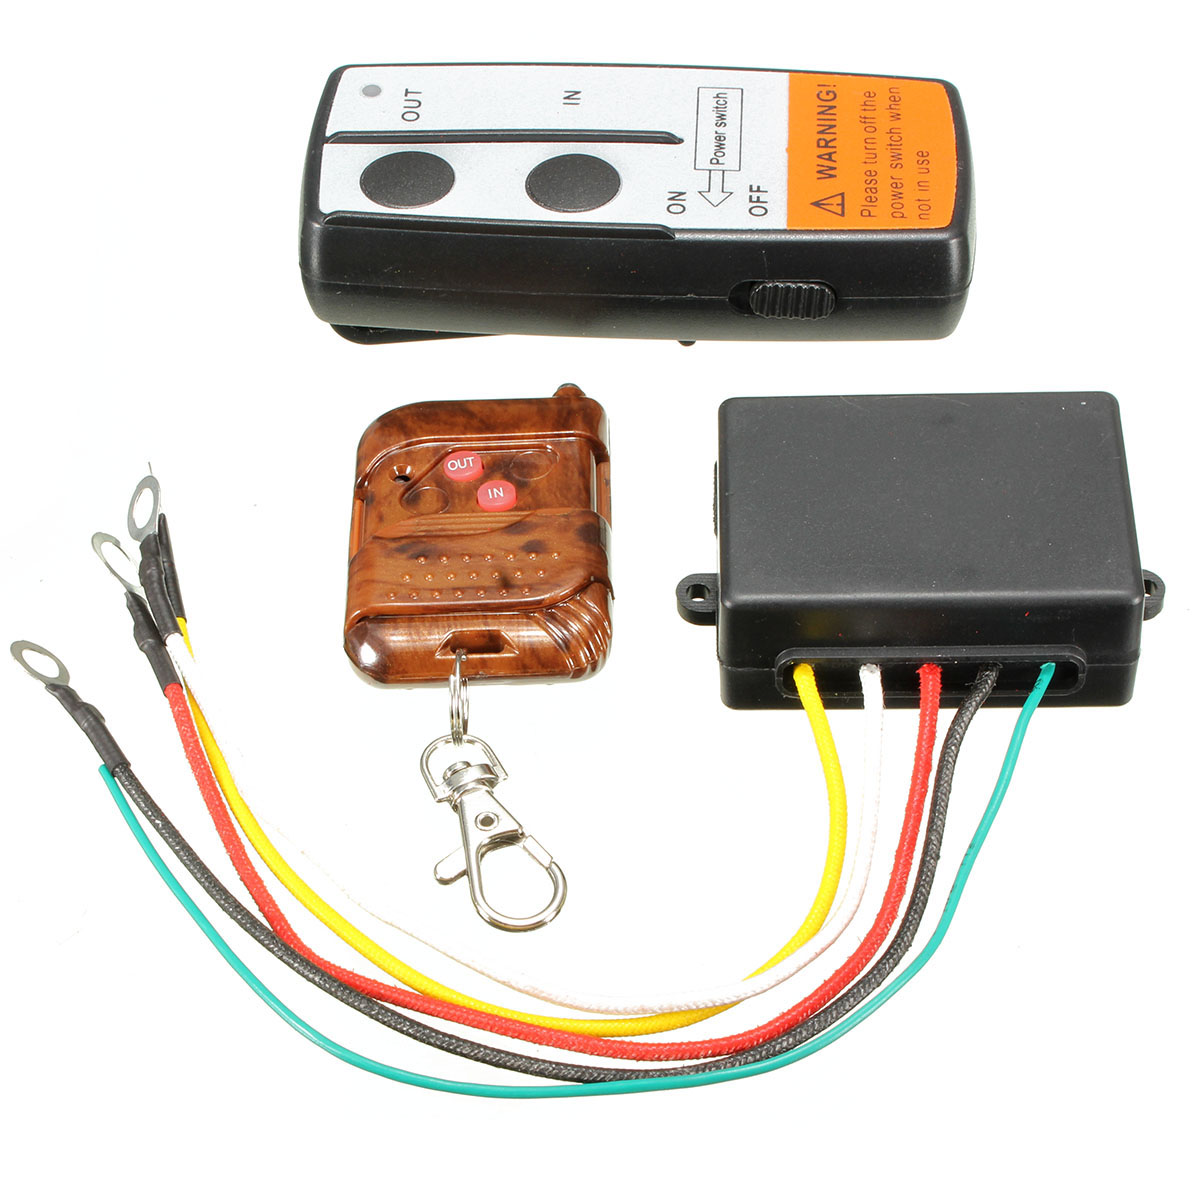 Promotion! Electric Wireless Winch Remote Control Handset 12V Heavy Duty For Truck Atv SUV